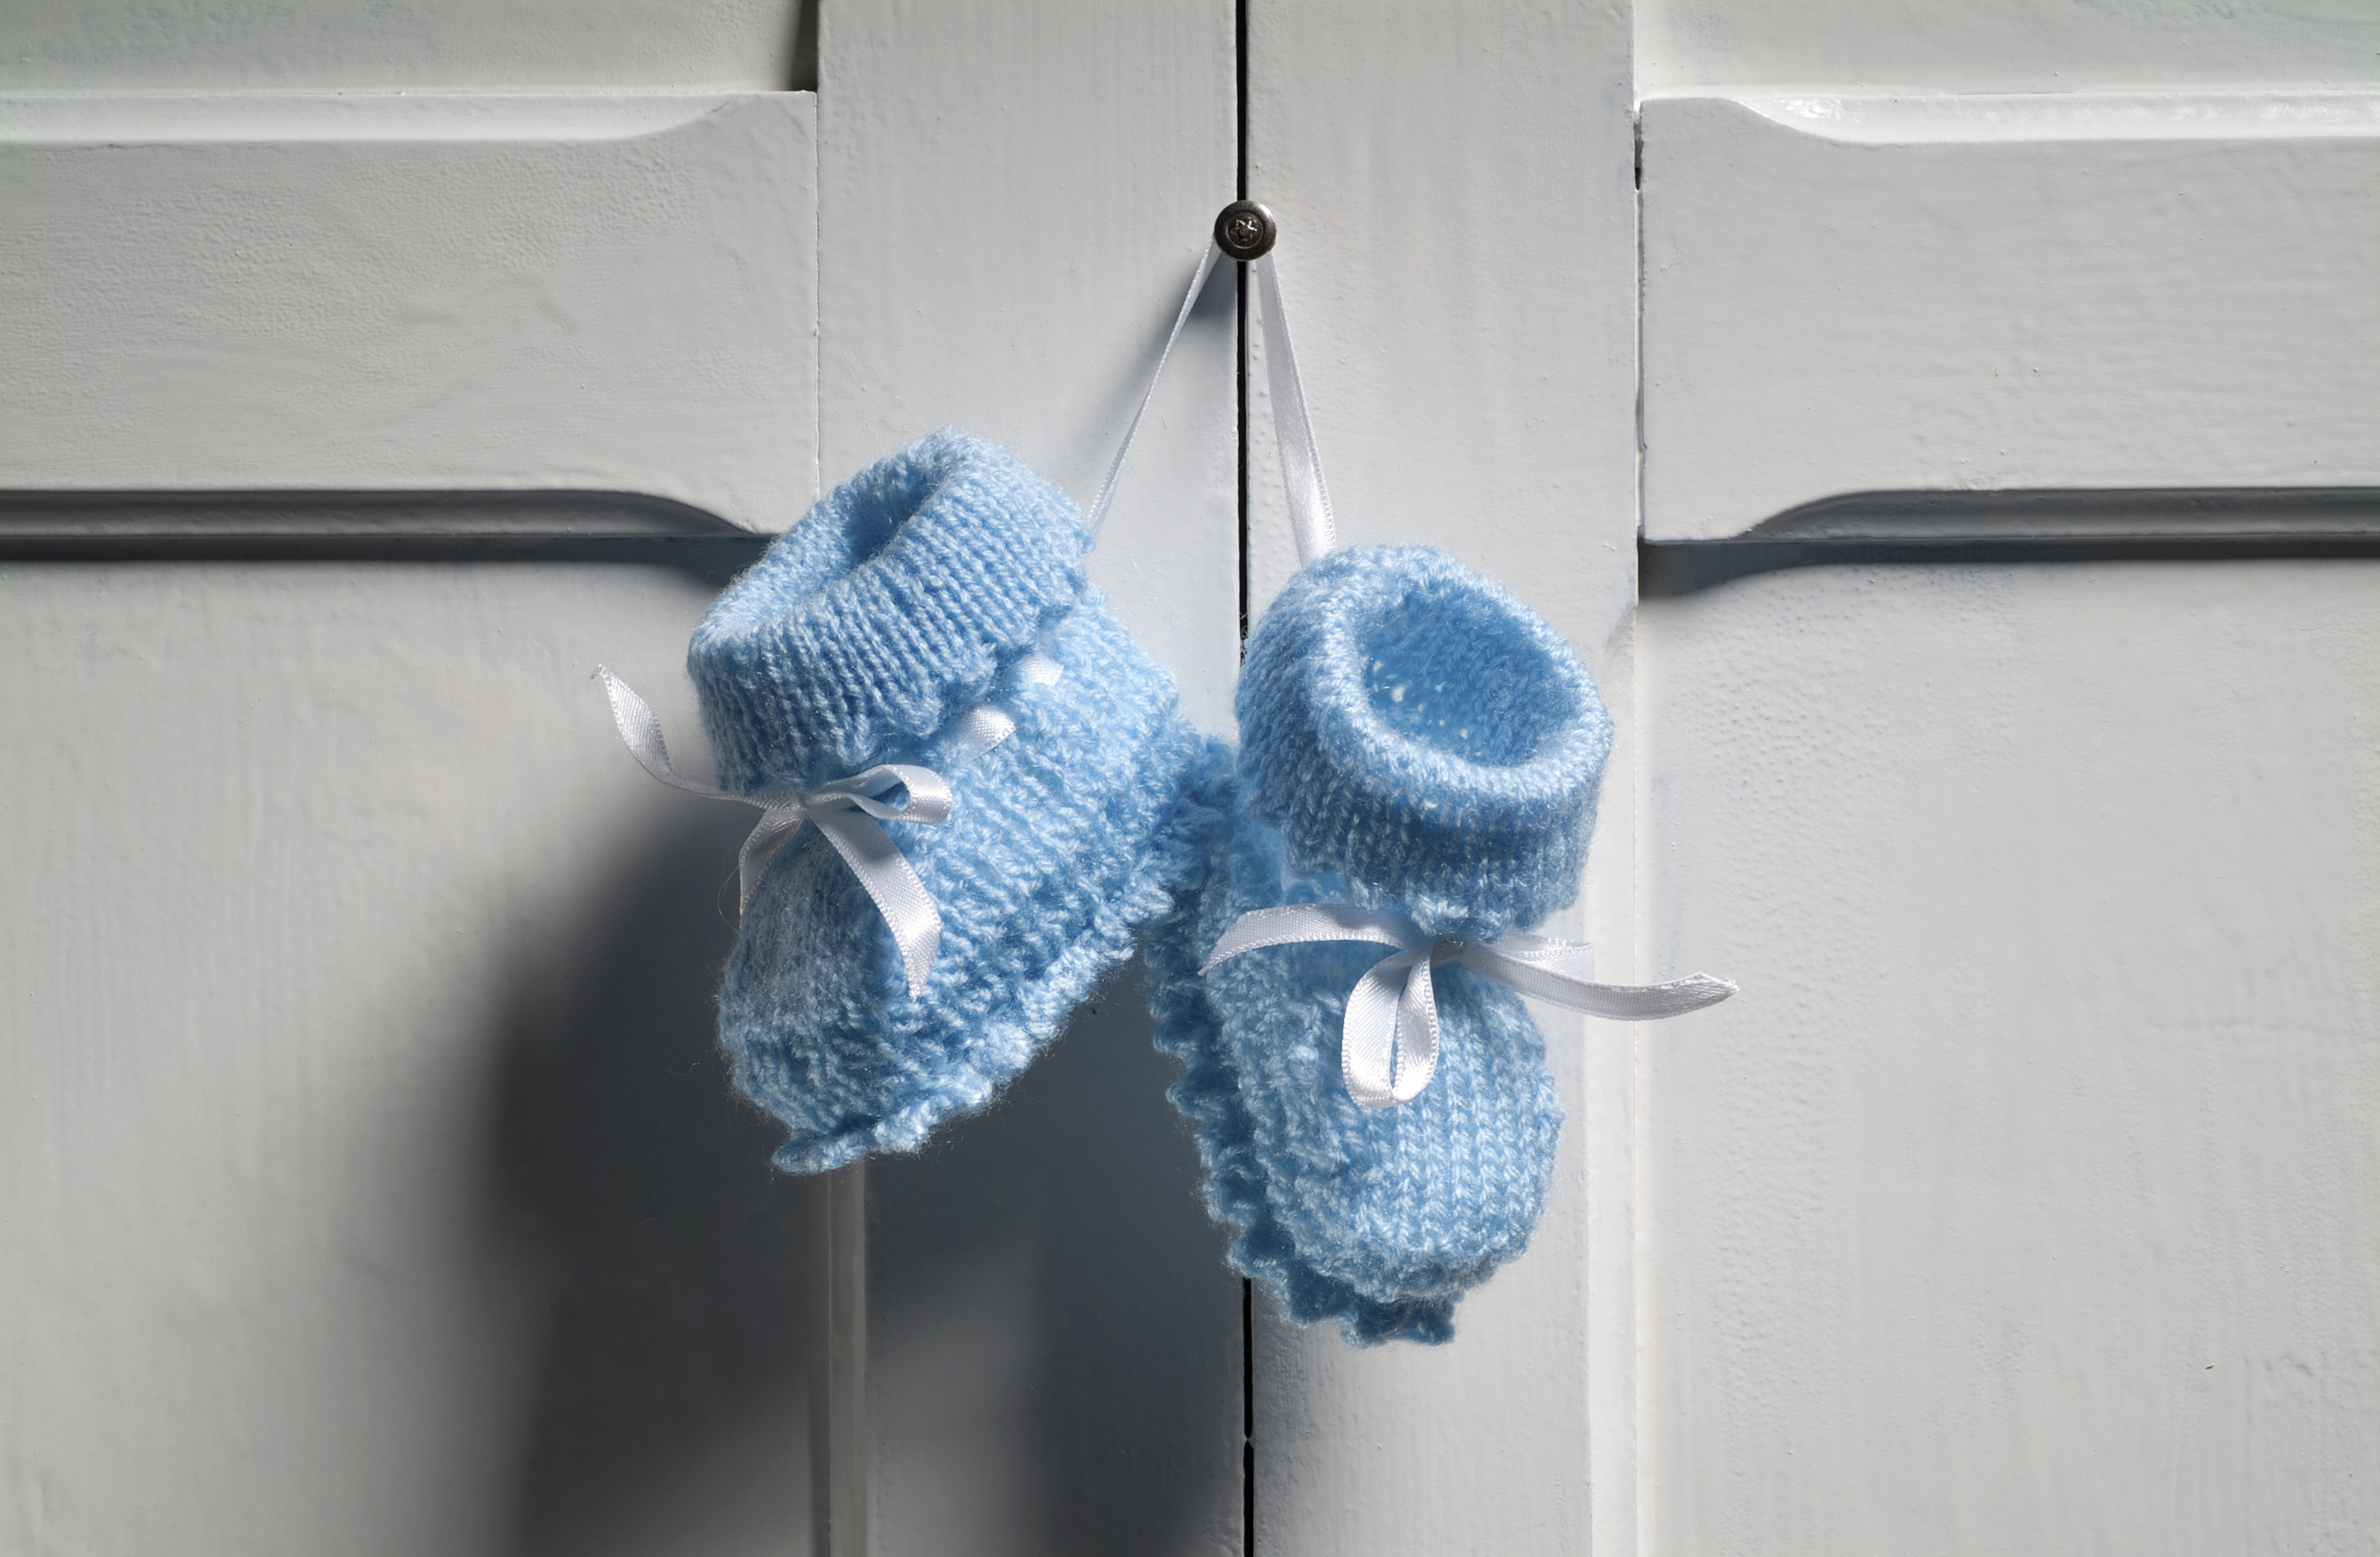 blue baby booties hang on wall